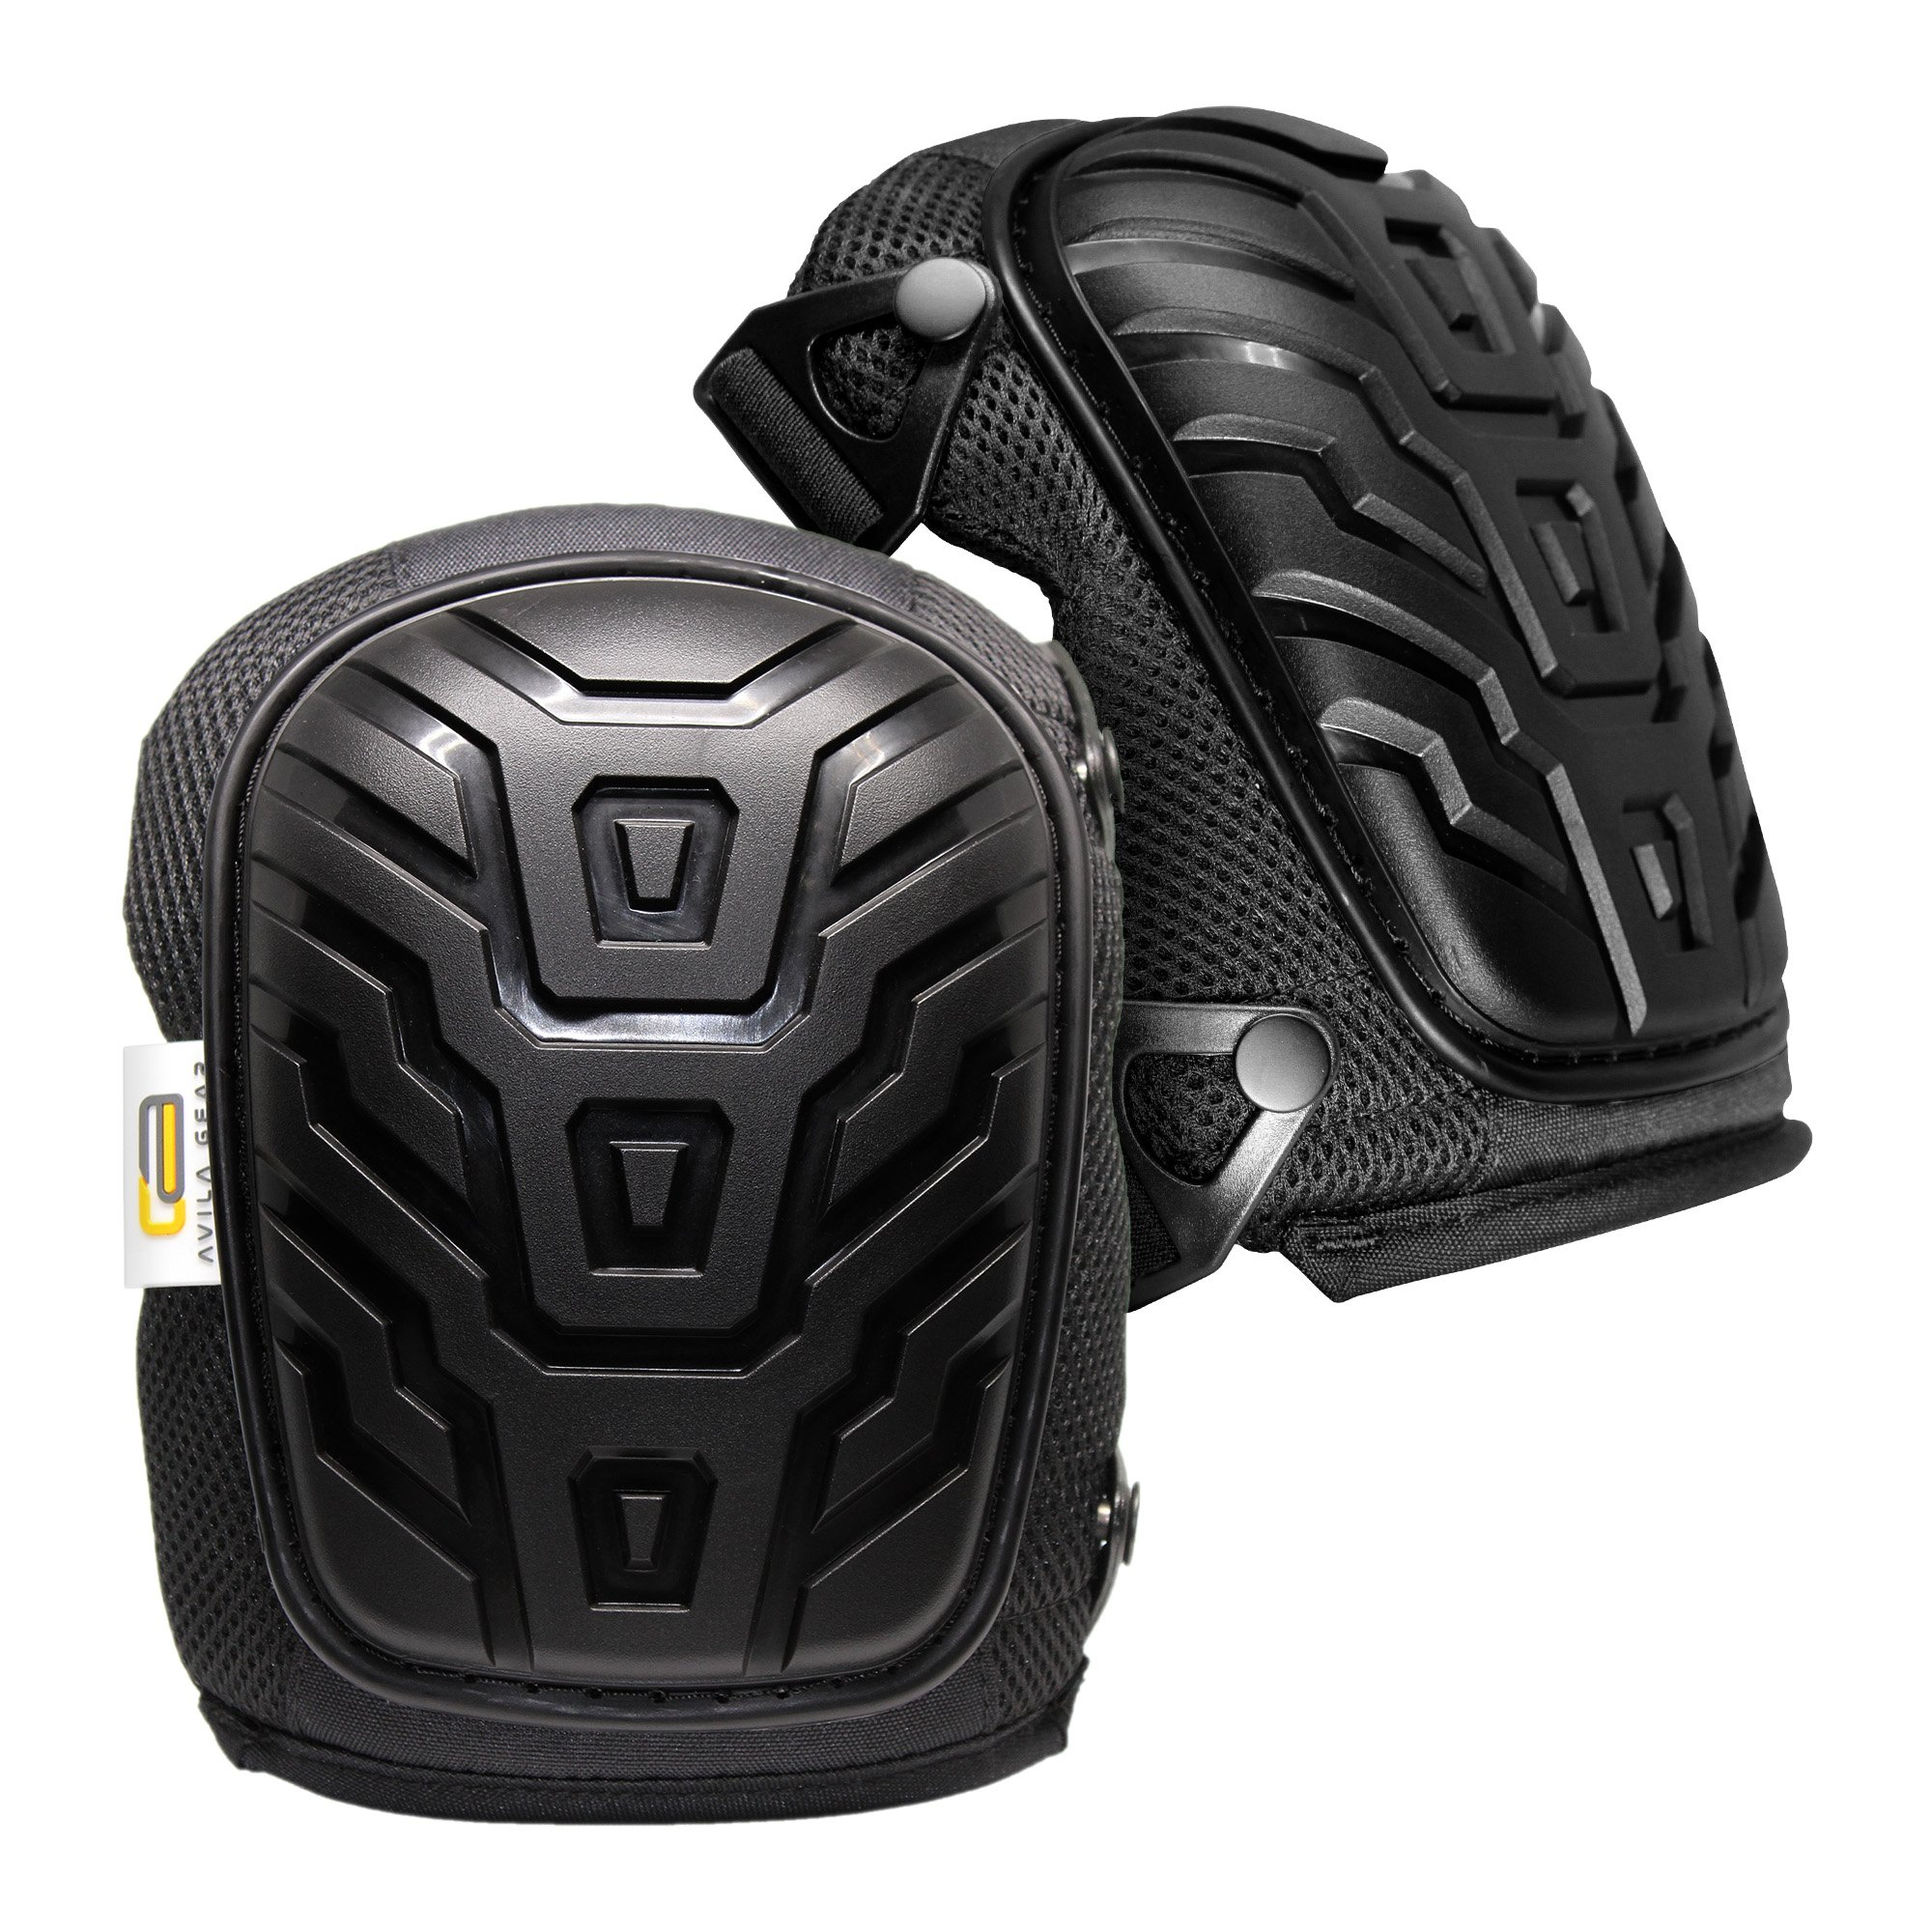 Knee Pads for Work Construction Flooring and Gardening â Comfort and Safety for Heavy Duty Work â Professional Protective Gear with Soft Gel Cushion, Foam Padding and Strong Adjustable Double Straps